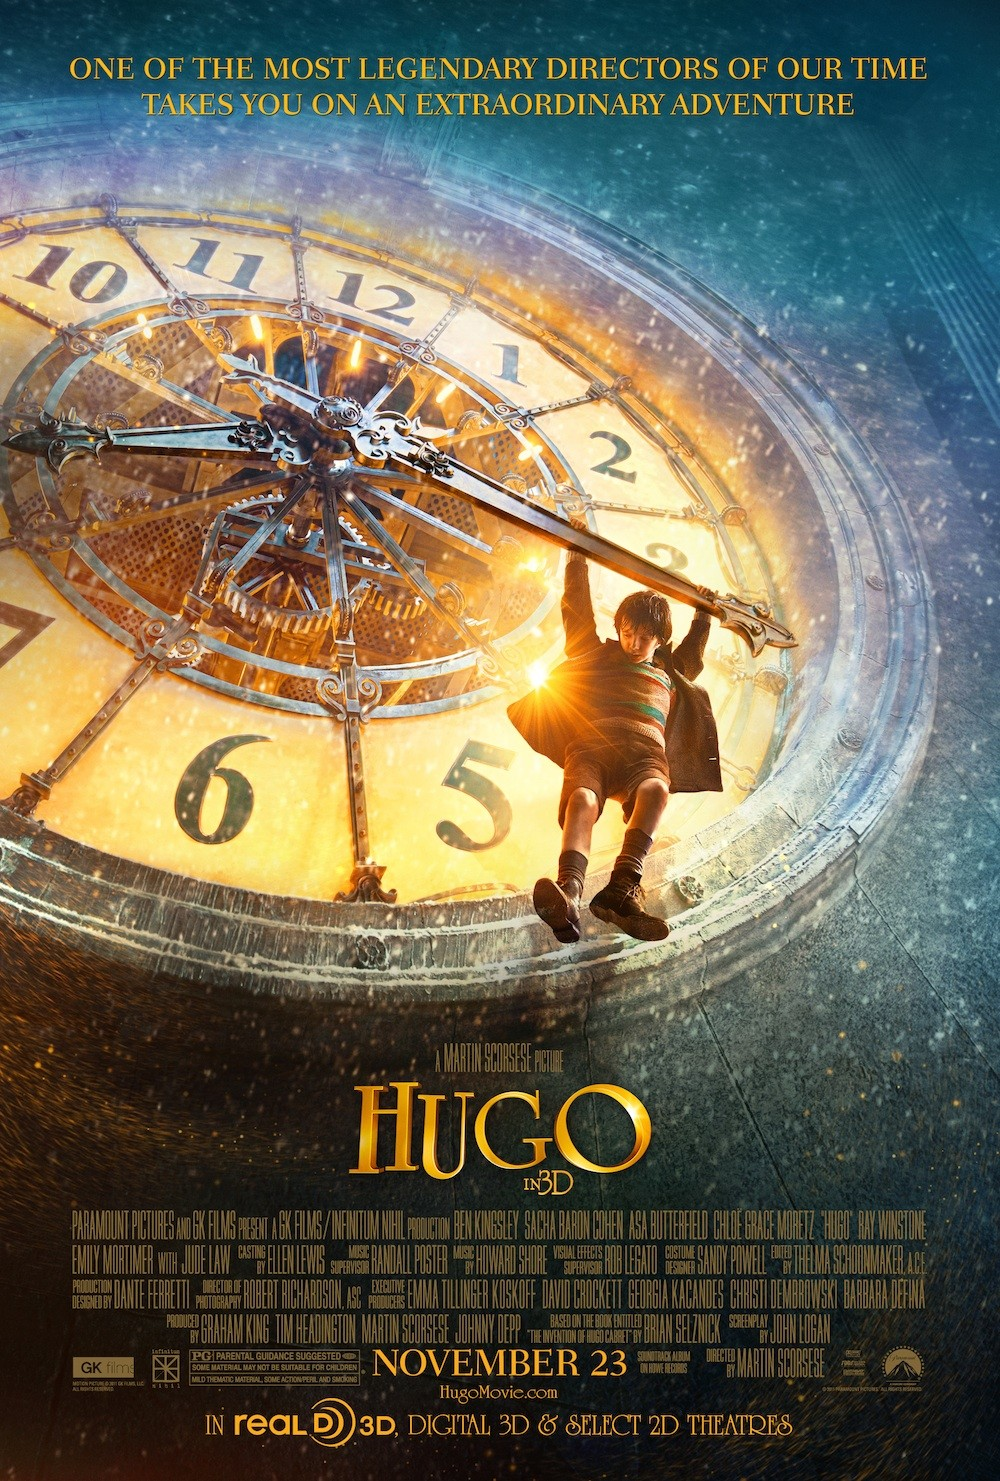 hugo-movie-poster-021